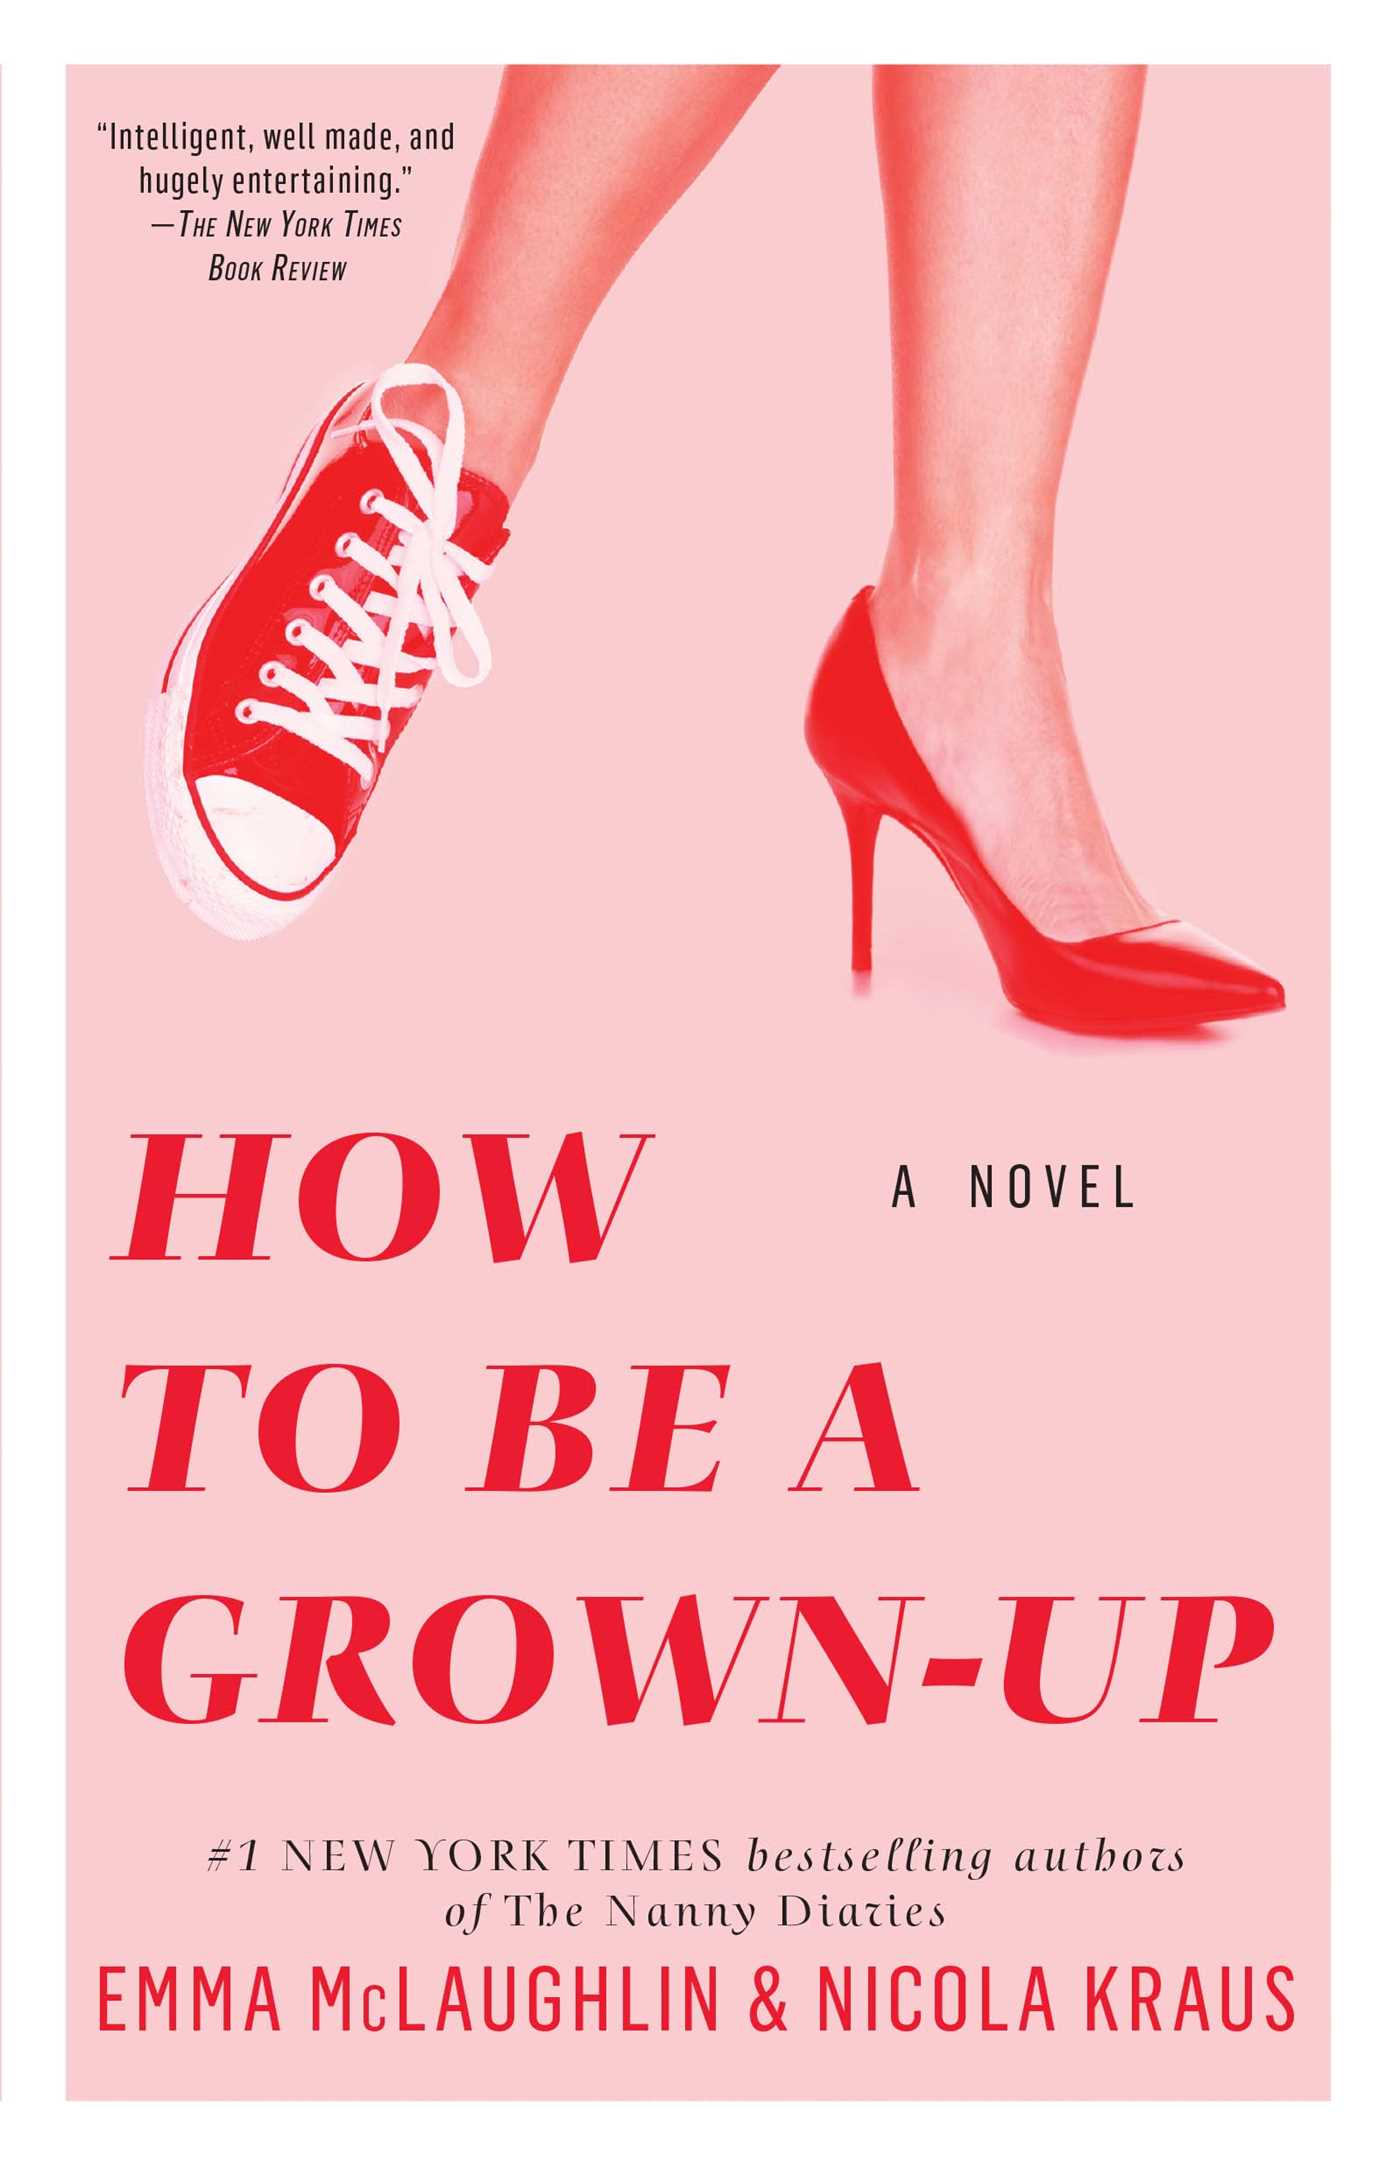 How to Be a Grown-Up  by Emma McLaughlin and Nicola Kraus